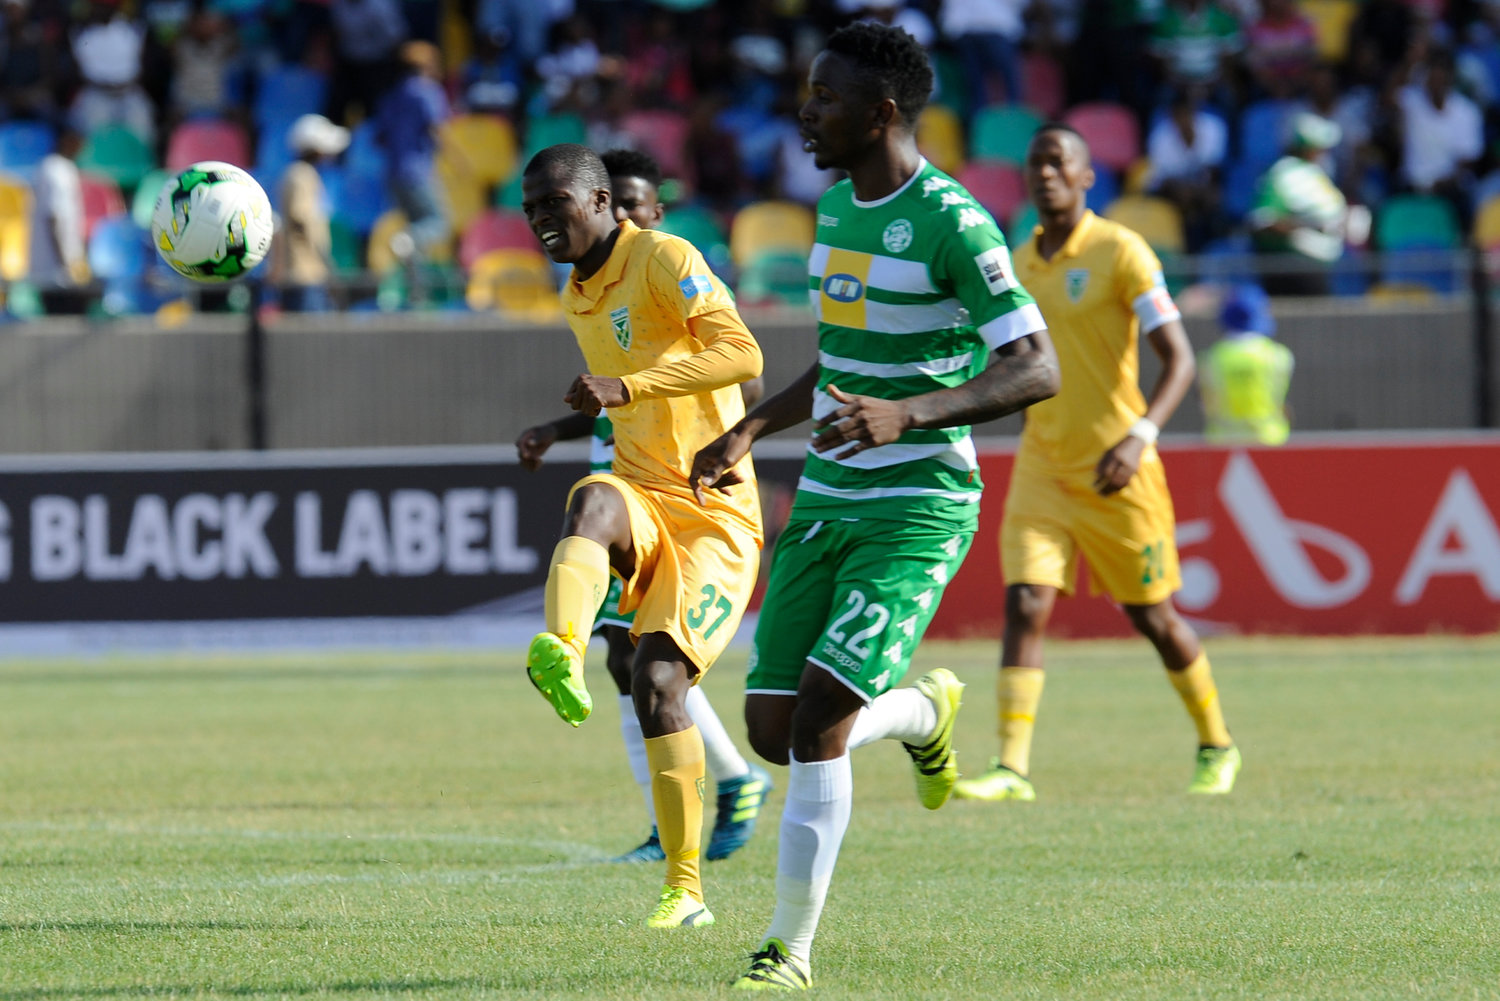 BLOEMFONTEIN, SOUTH AFRICA - JANUARY 07: Velemseni Ndwandwe of Golden Arrows  during the Absa Premiership match between Bloemfontein Celtic and Golden Arrows at Dr Molemela Stadium on January 07, 2018 in Bloemfontein, South Africa. (Photo by CharlŽ Lombard/Gallo Images)